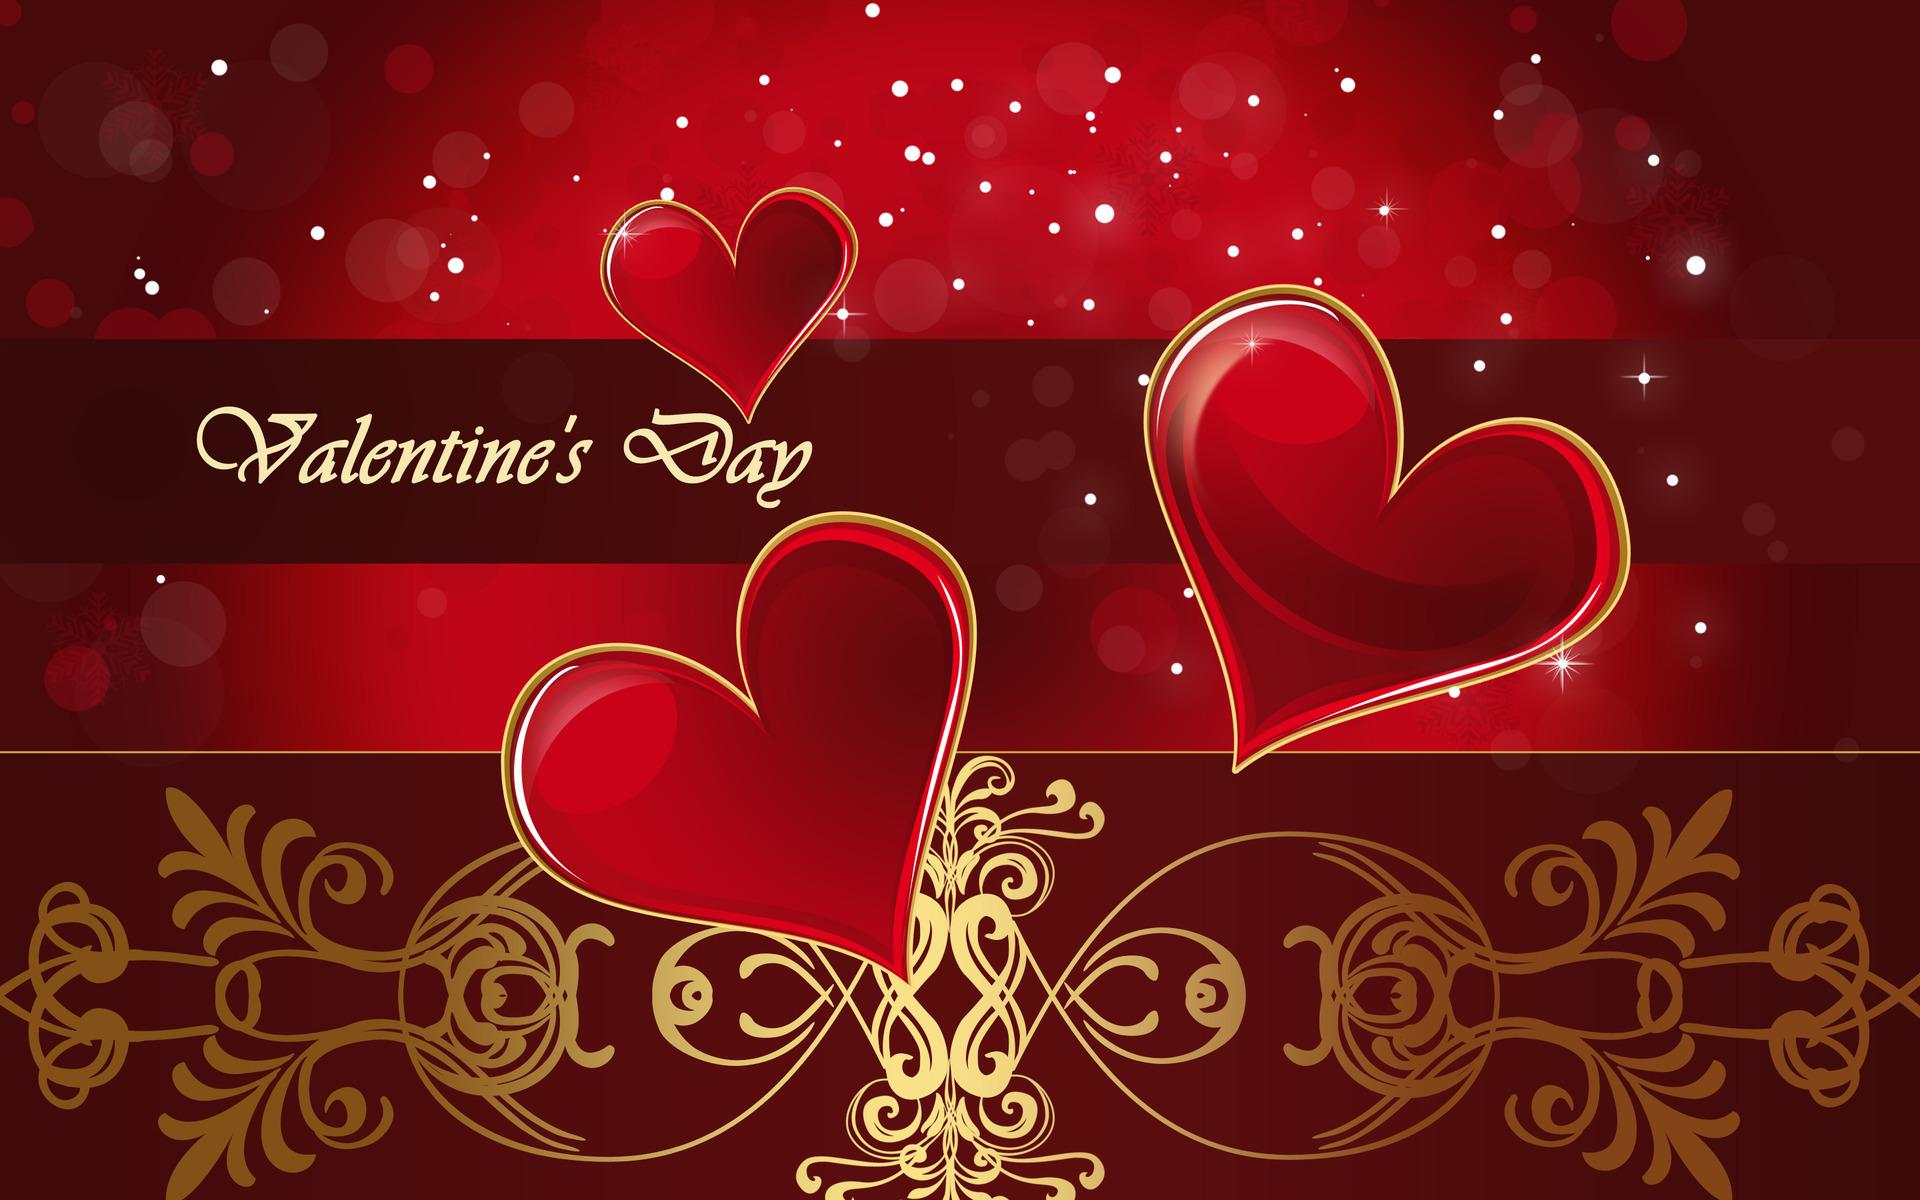 Happy valentines day love wishes greetings templates hd wallpaper kristyandbryce Image collections